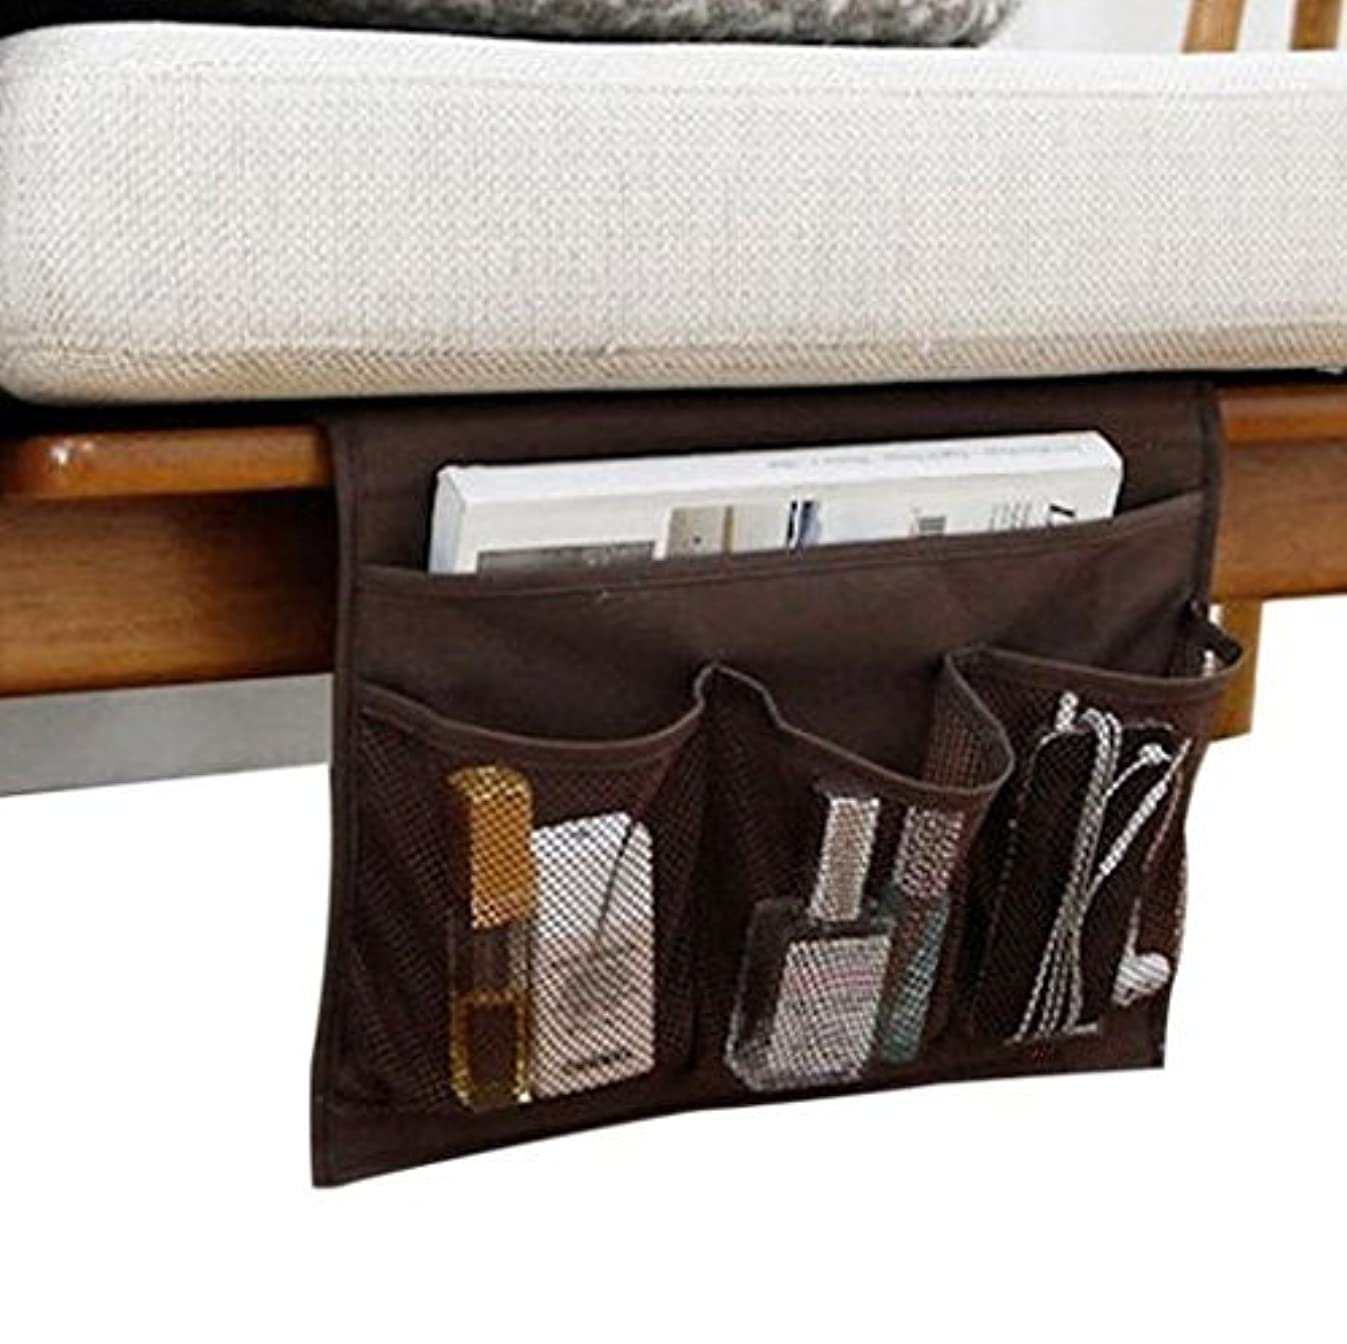 Bedside Storage Organizer Sofa Storage Organizer Table cabinet Storage Organizer for tablet Magazine Phone Remotes - All Within Arms Reach